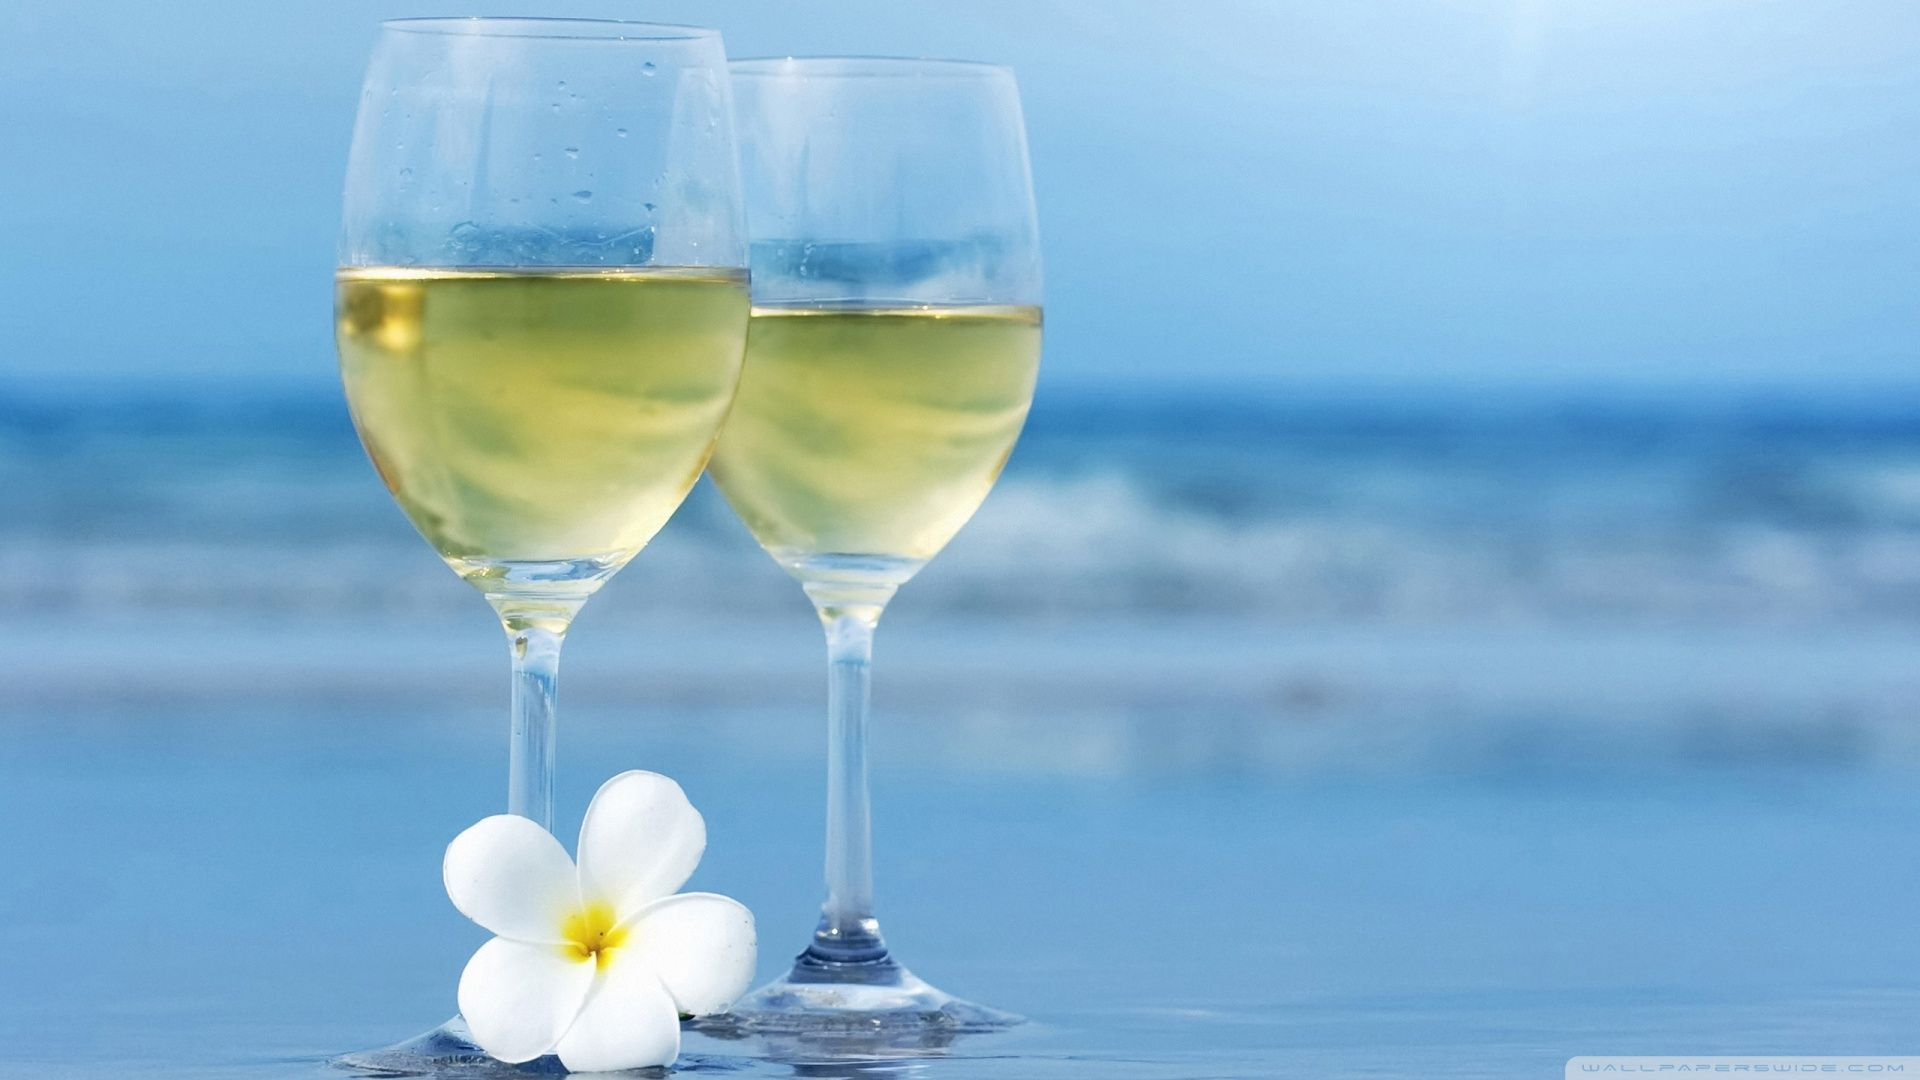 Here Two Glasses Of White Wine And Also Withe Wine